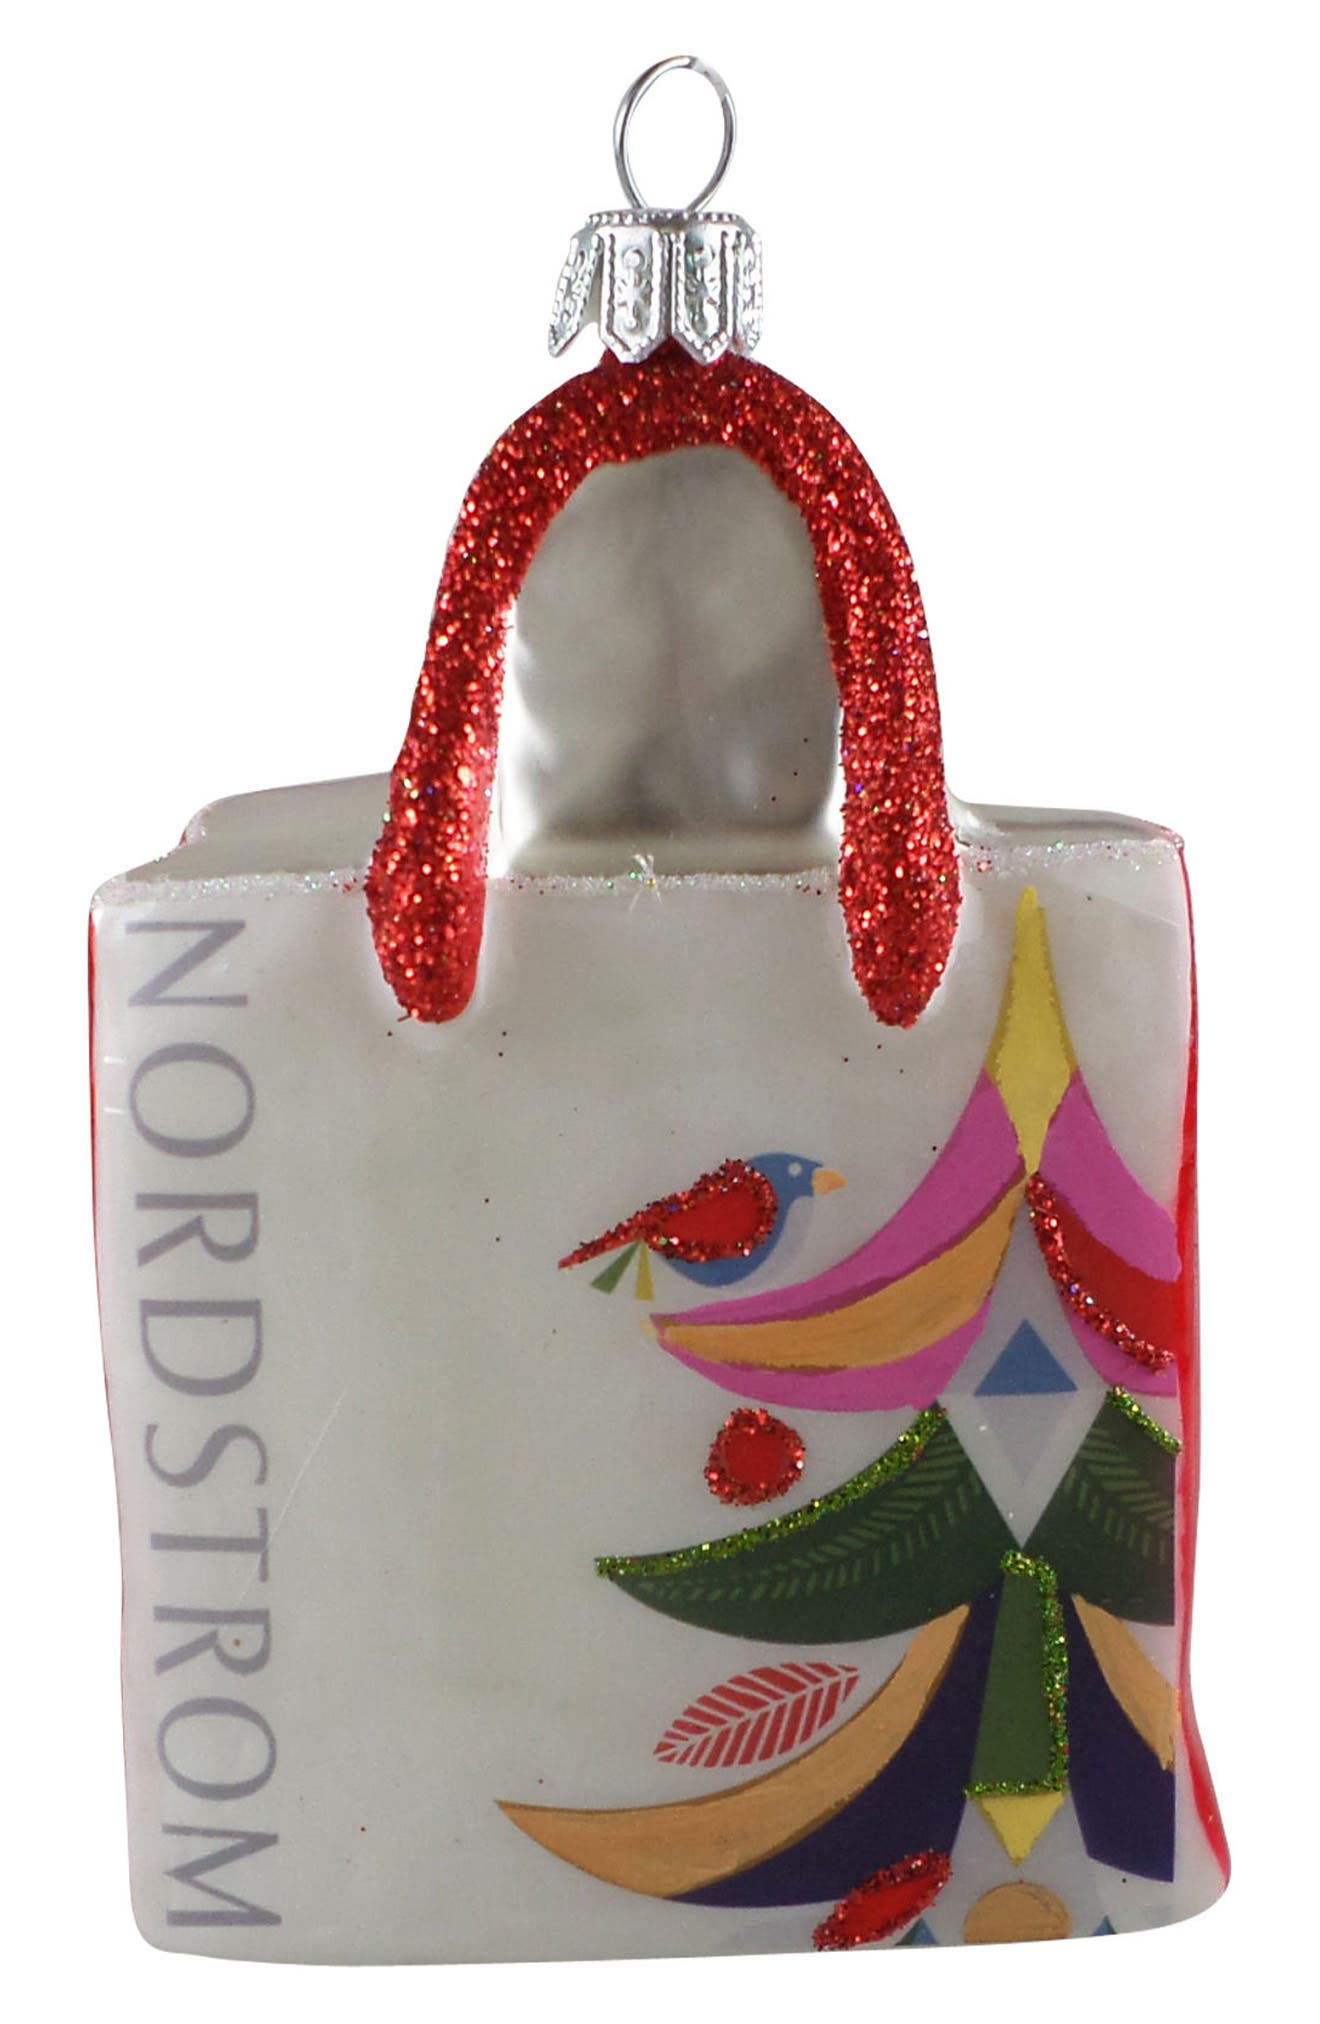 Main Image - Nordstrom at Home Nordstrom Shopping Bag 2017 Ornament